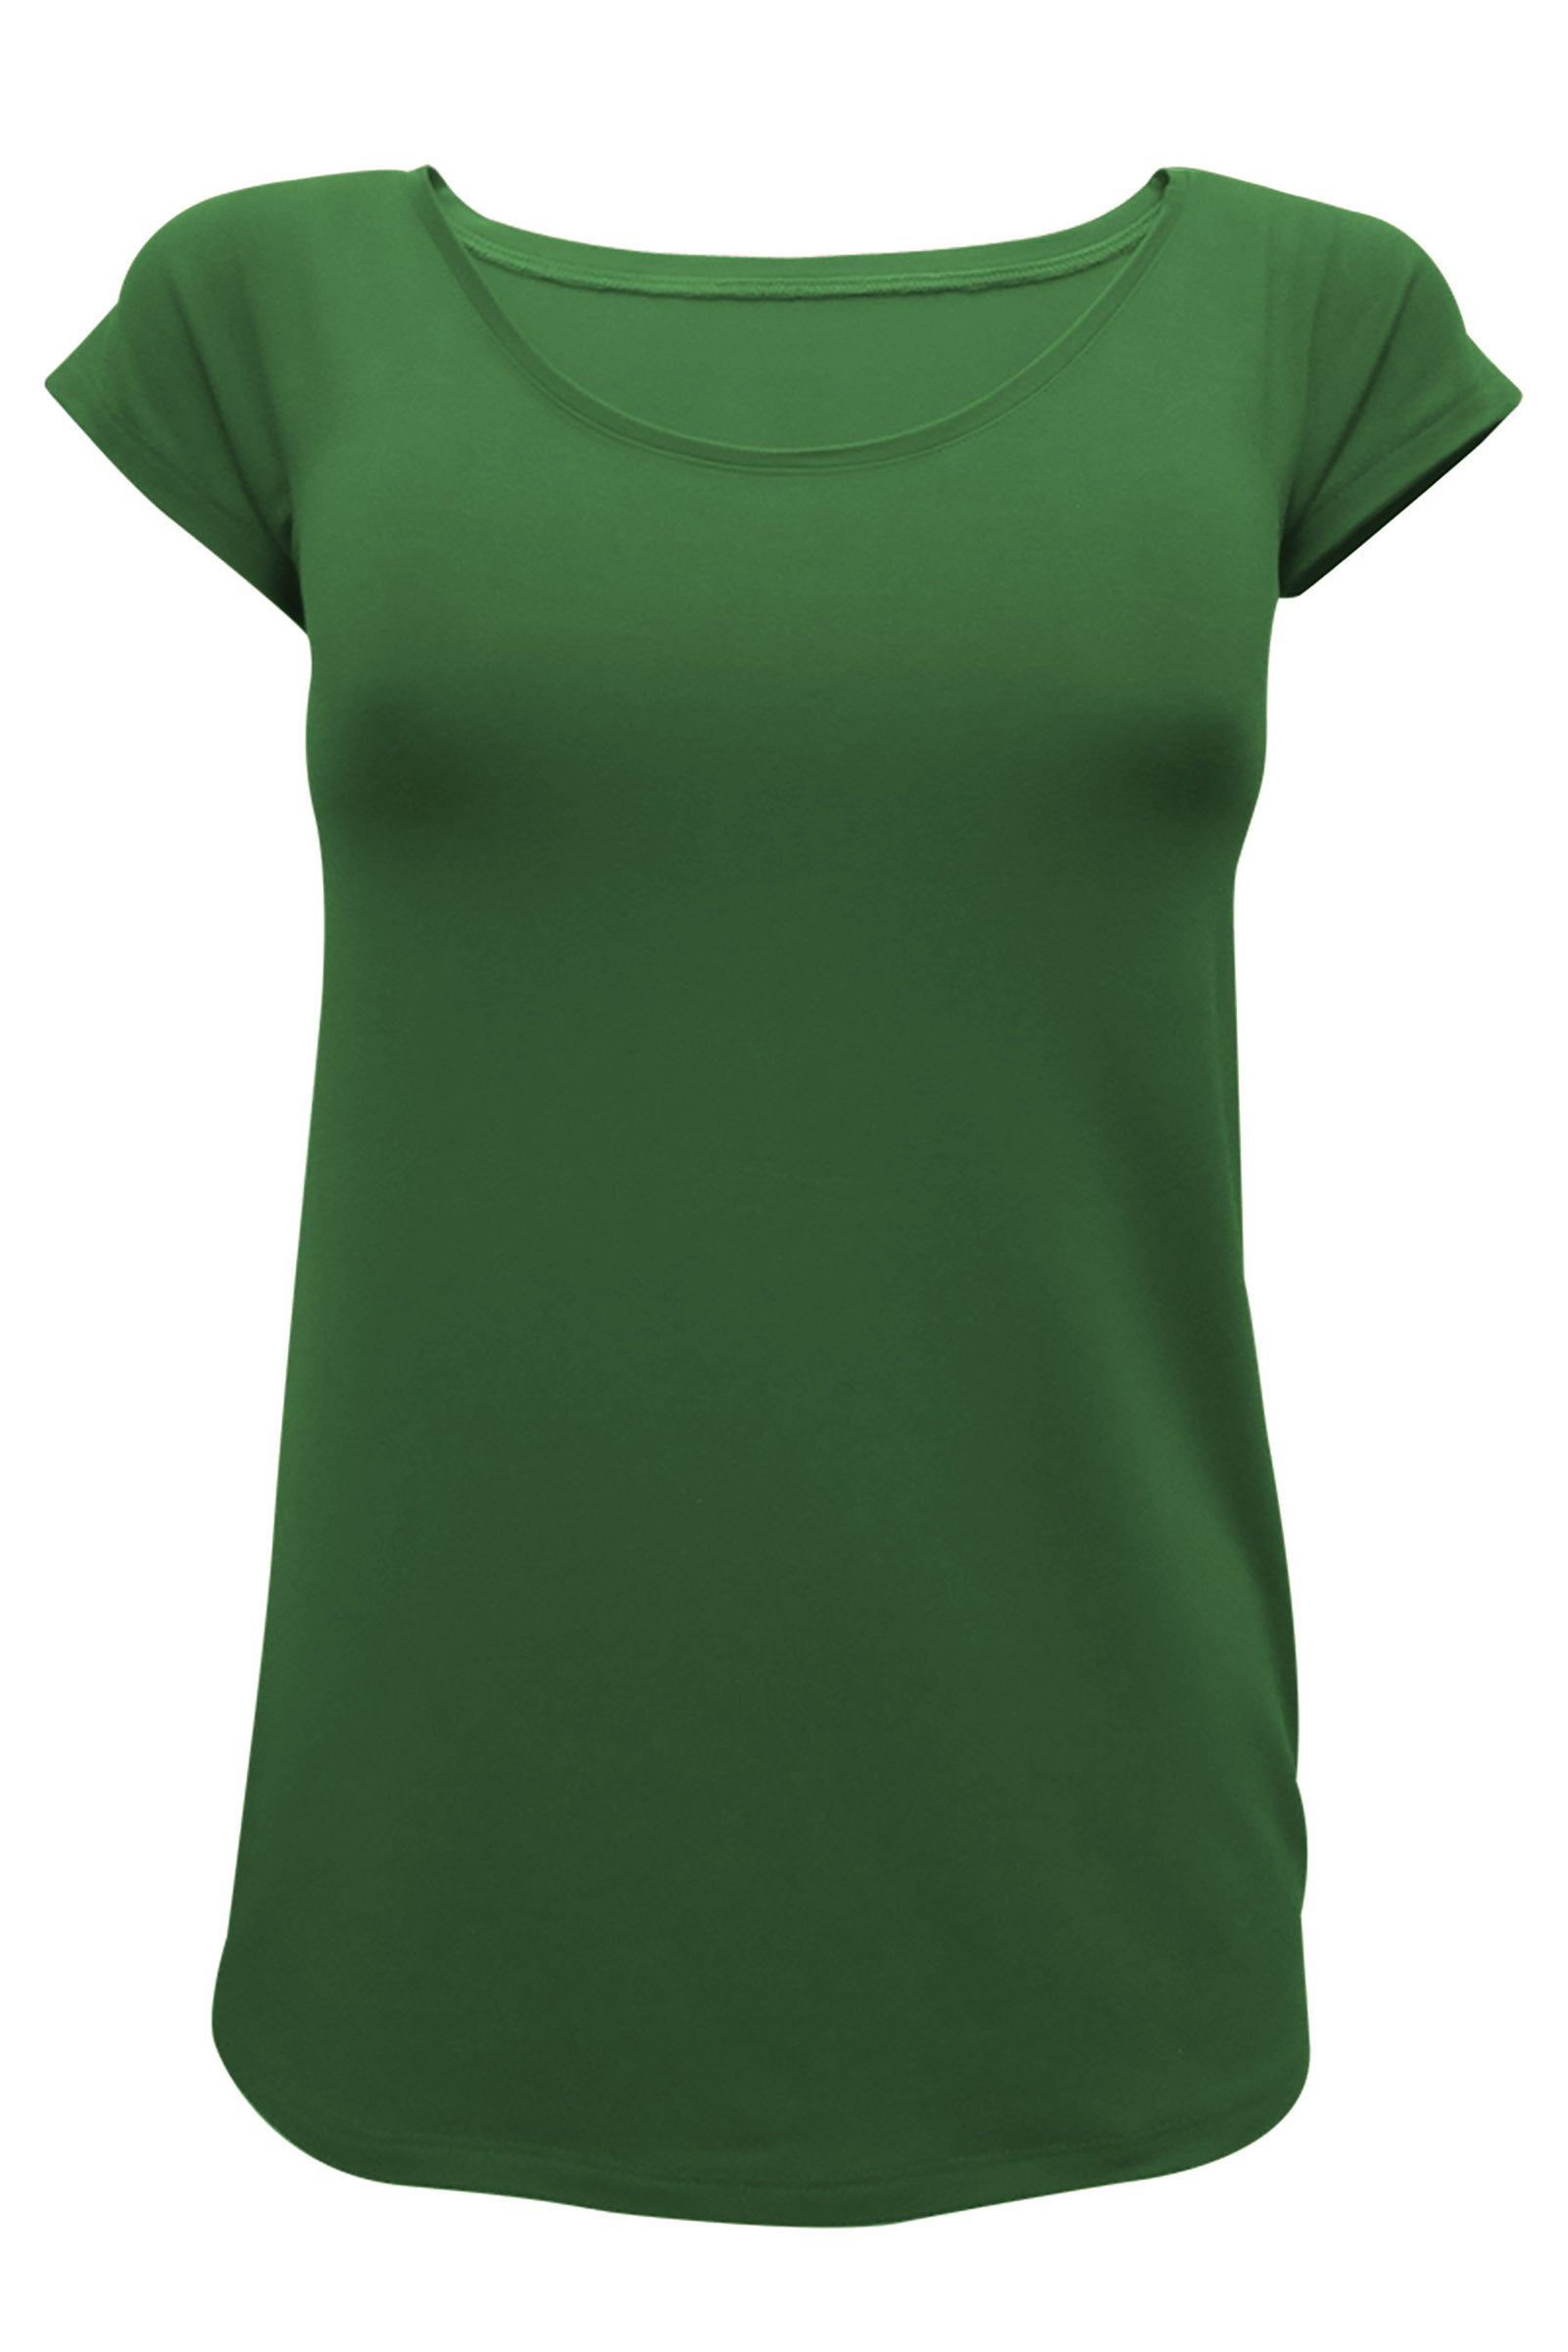 Amy Short Sleeve Tee by Moovment, Avocado, short sleeves, round neck, close fit, bamboo, sizes XS to XXL, made in Quebec